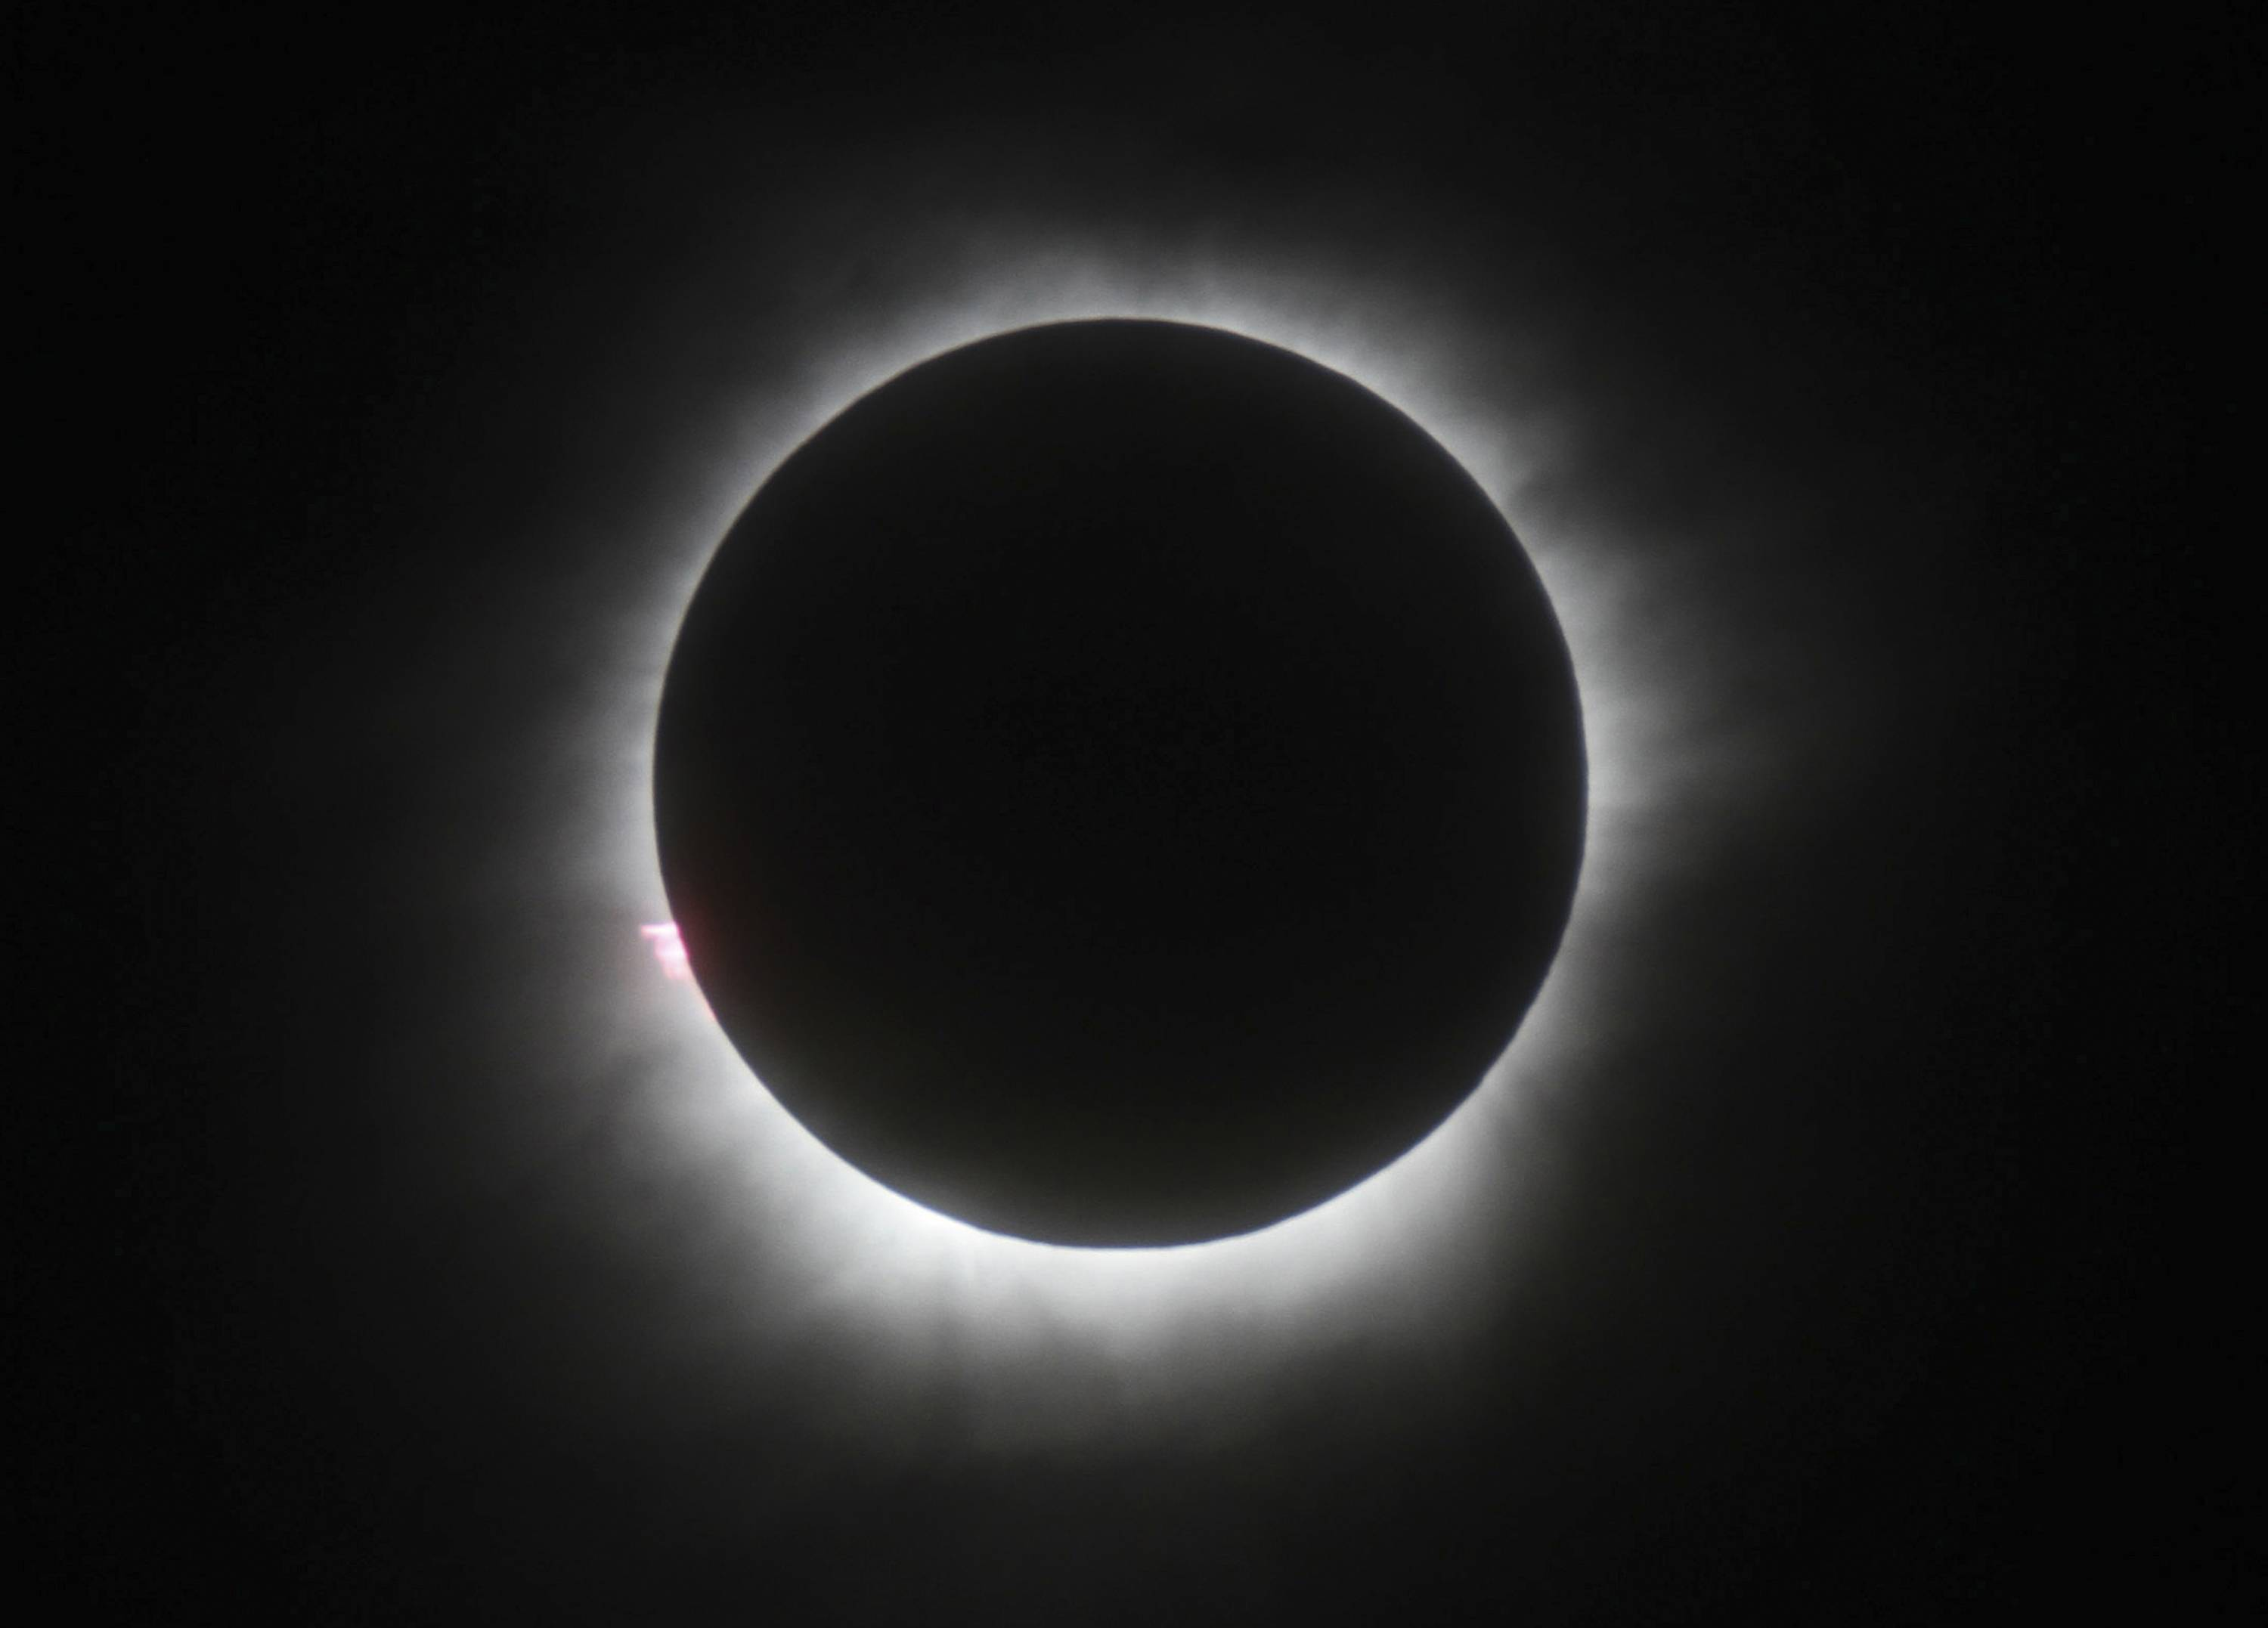 Eclipse offers power companies opportunity for experiments